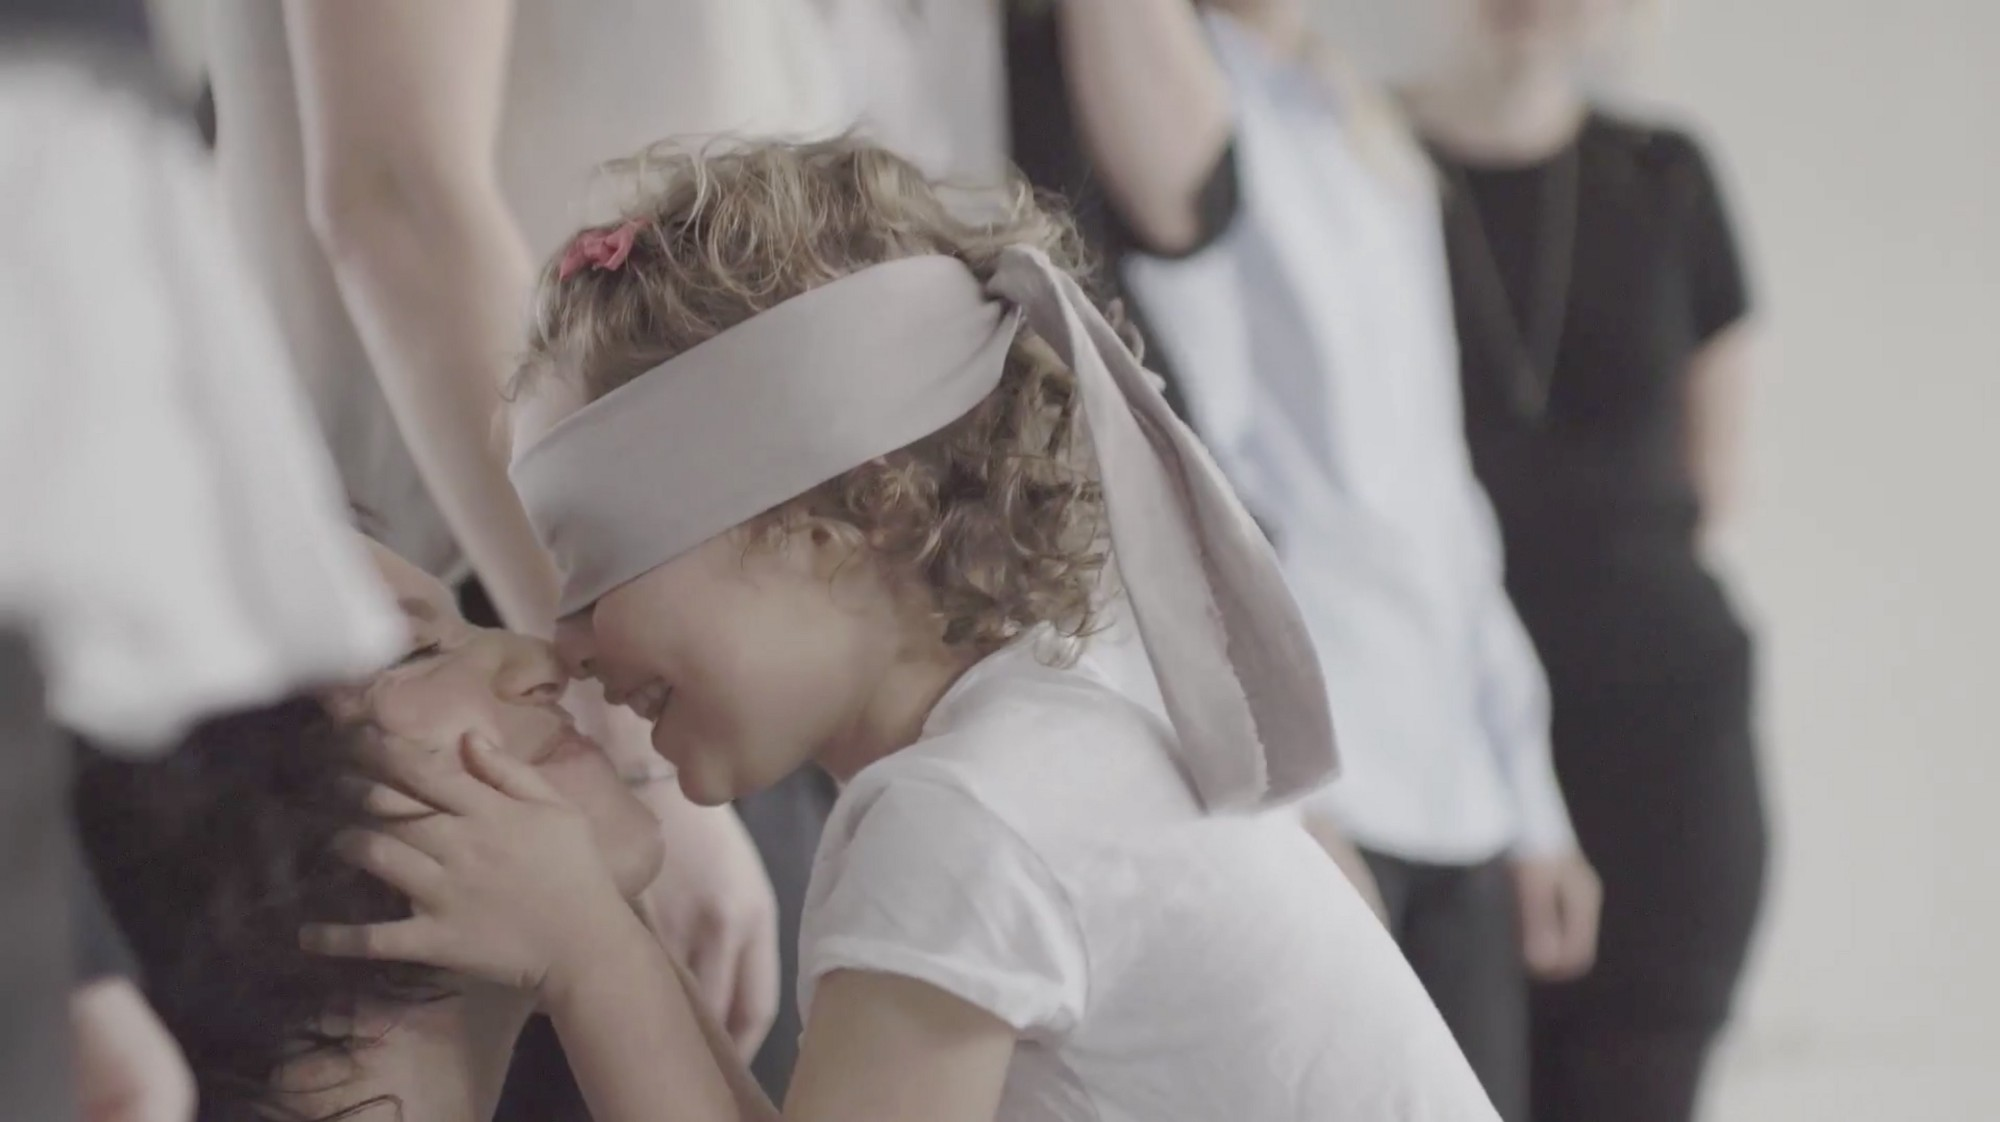 A blindfolded child and her mum laugh together.